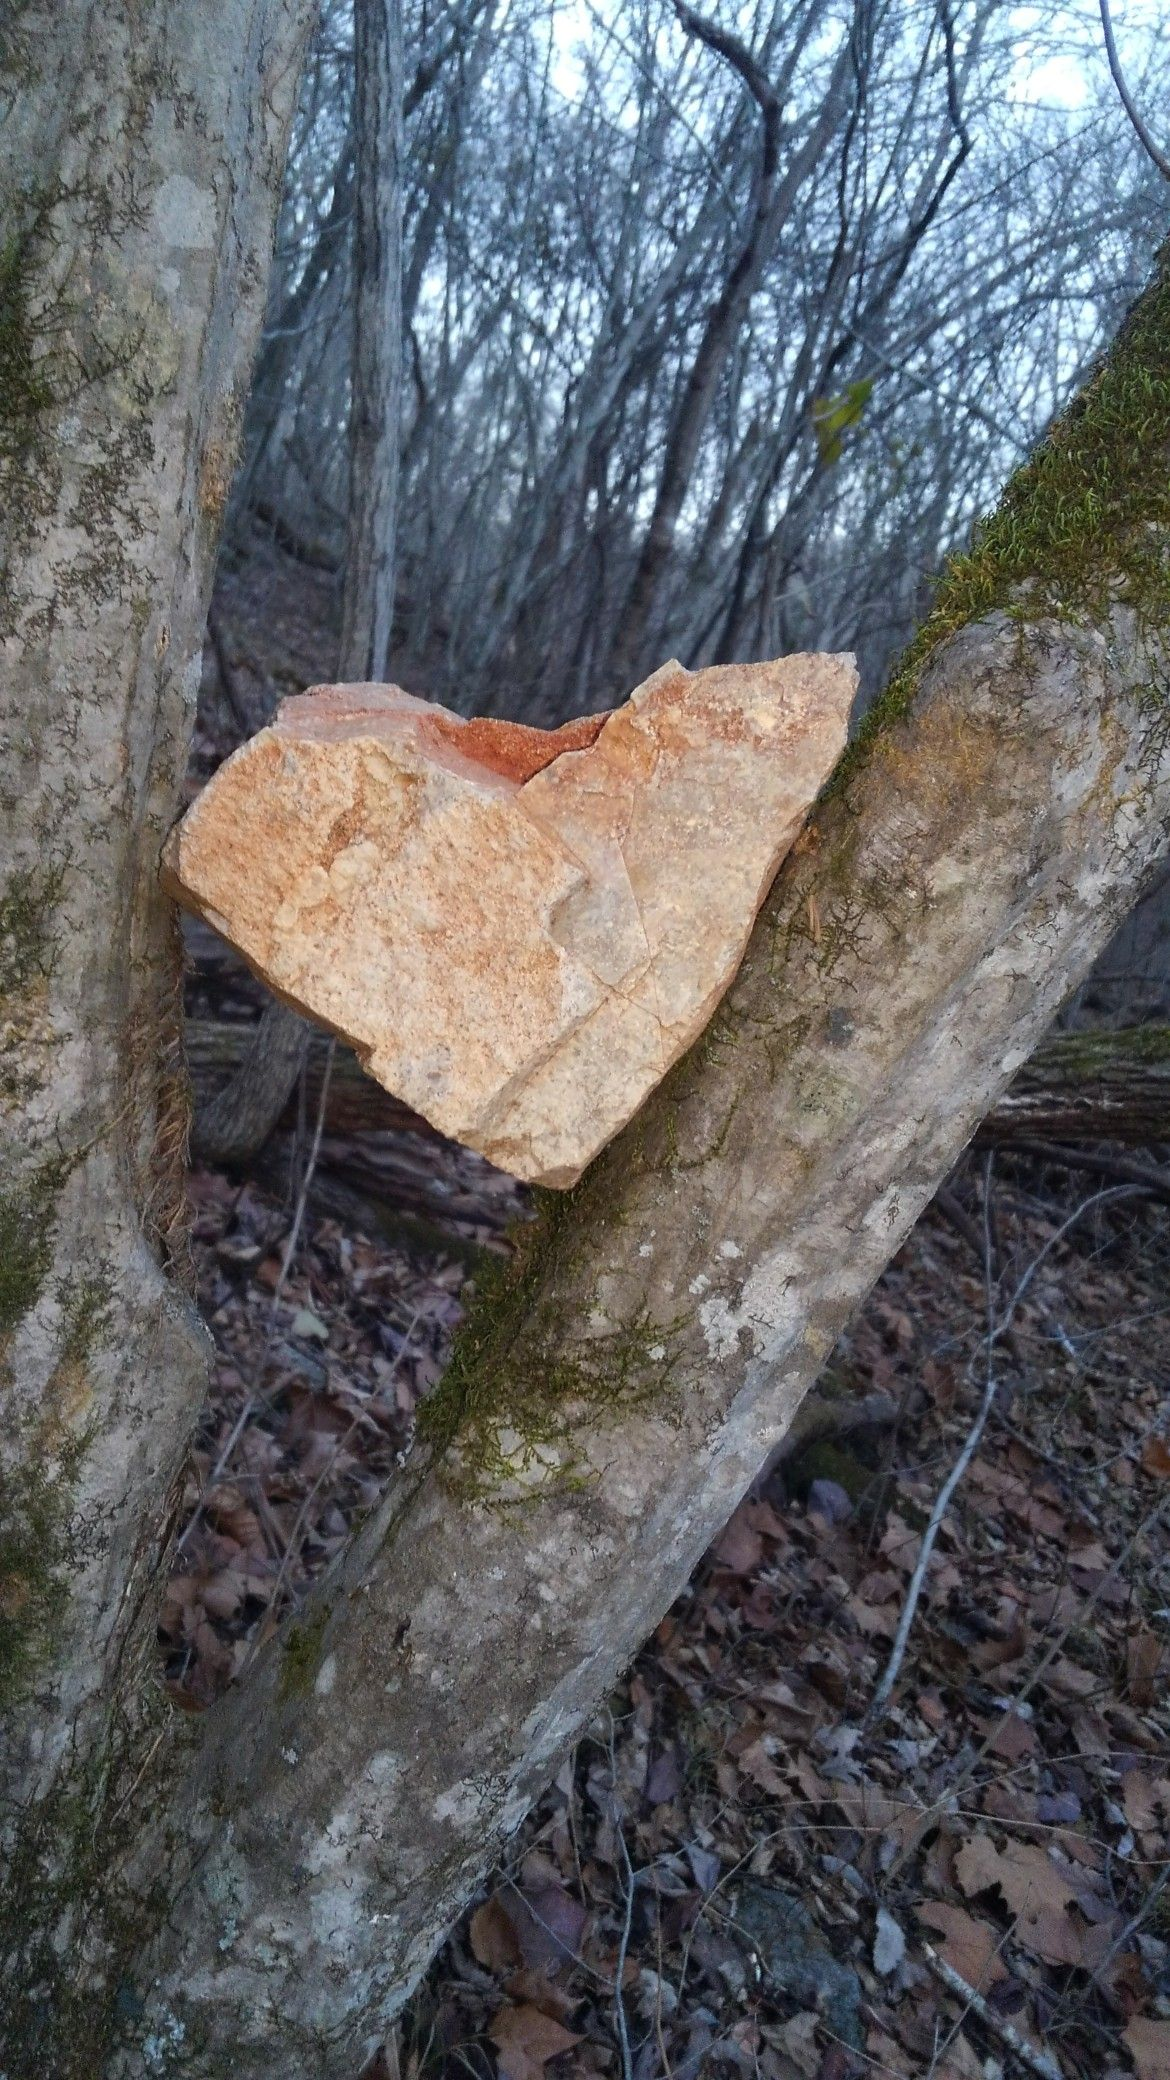 We found this rock in a tree near Cave Springs which is